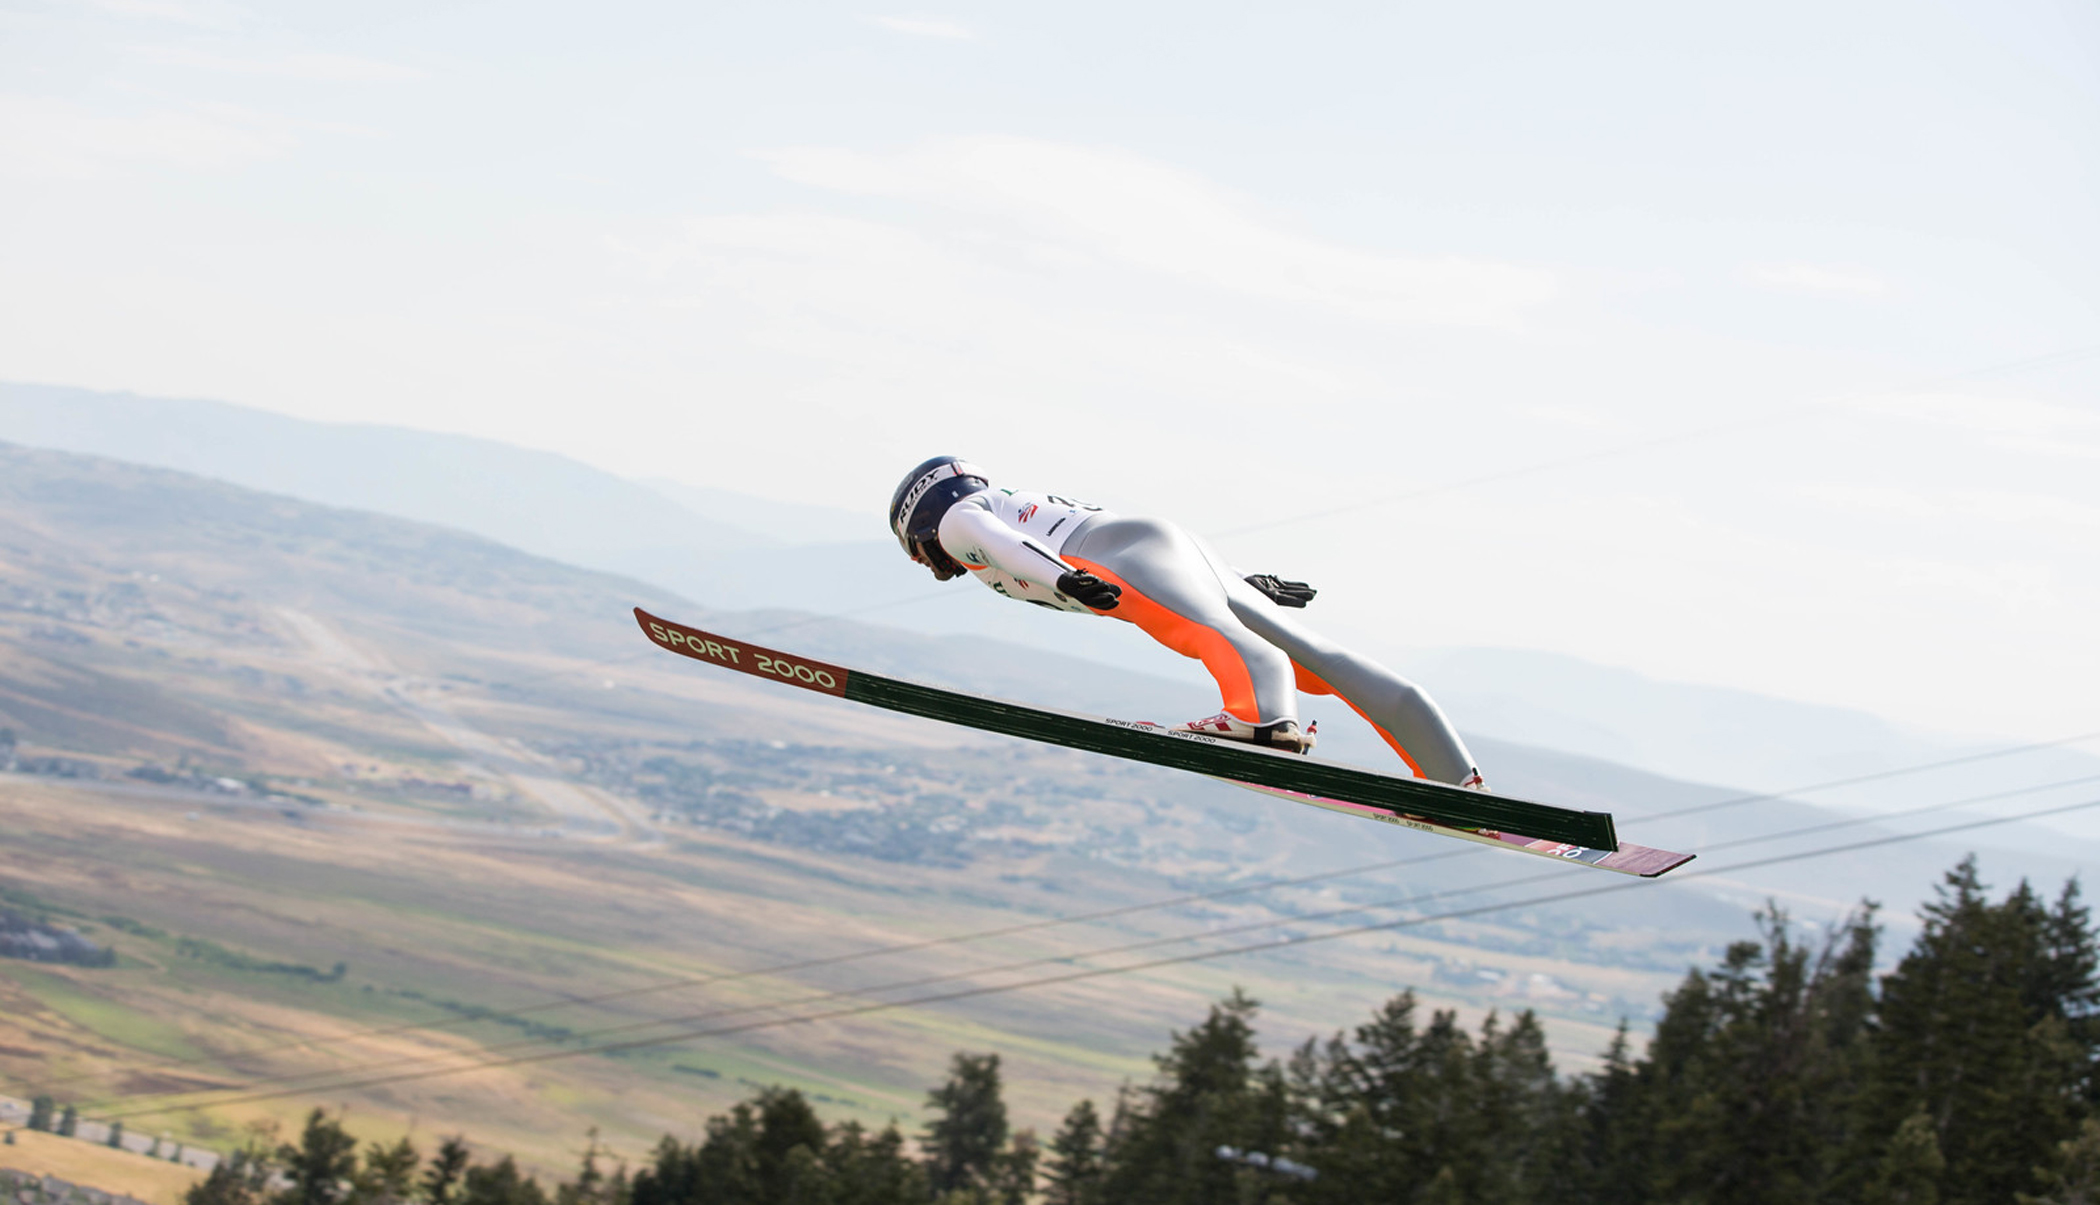 Olympic Winter Games Ski Jumping Criteria